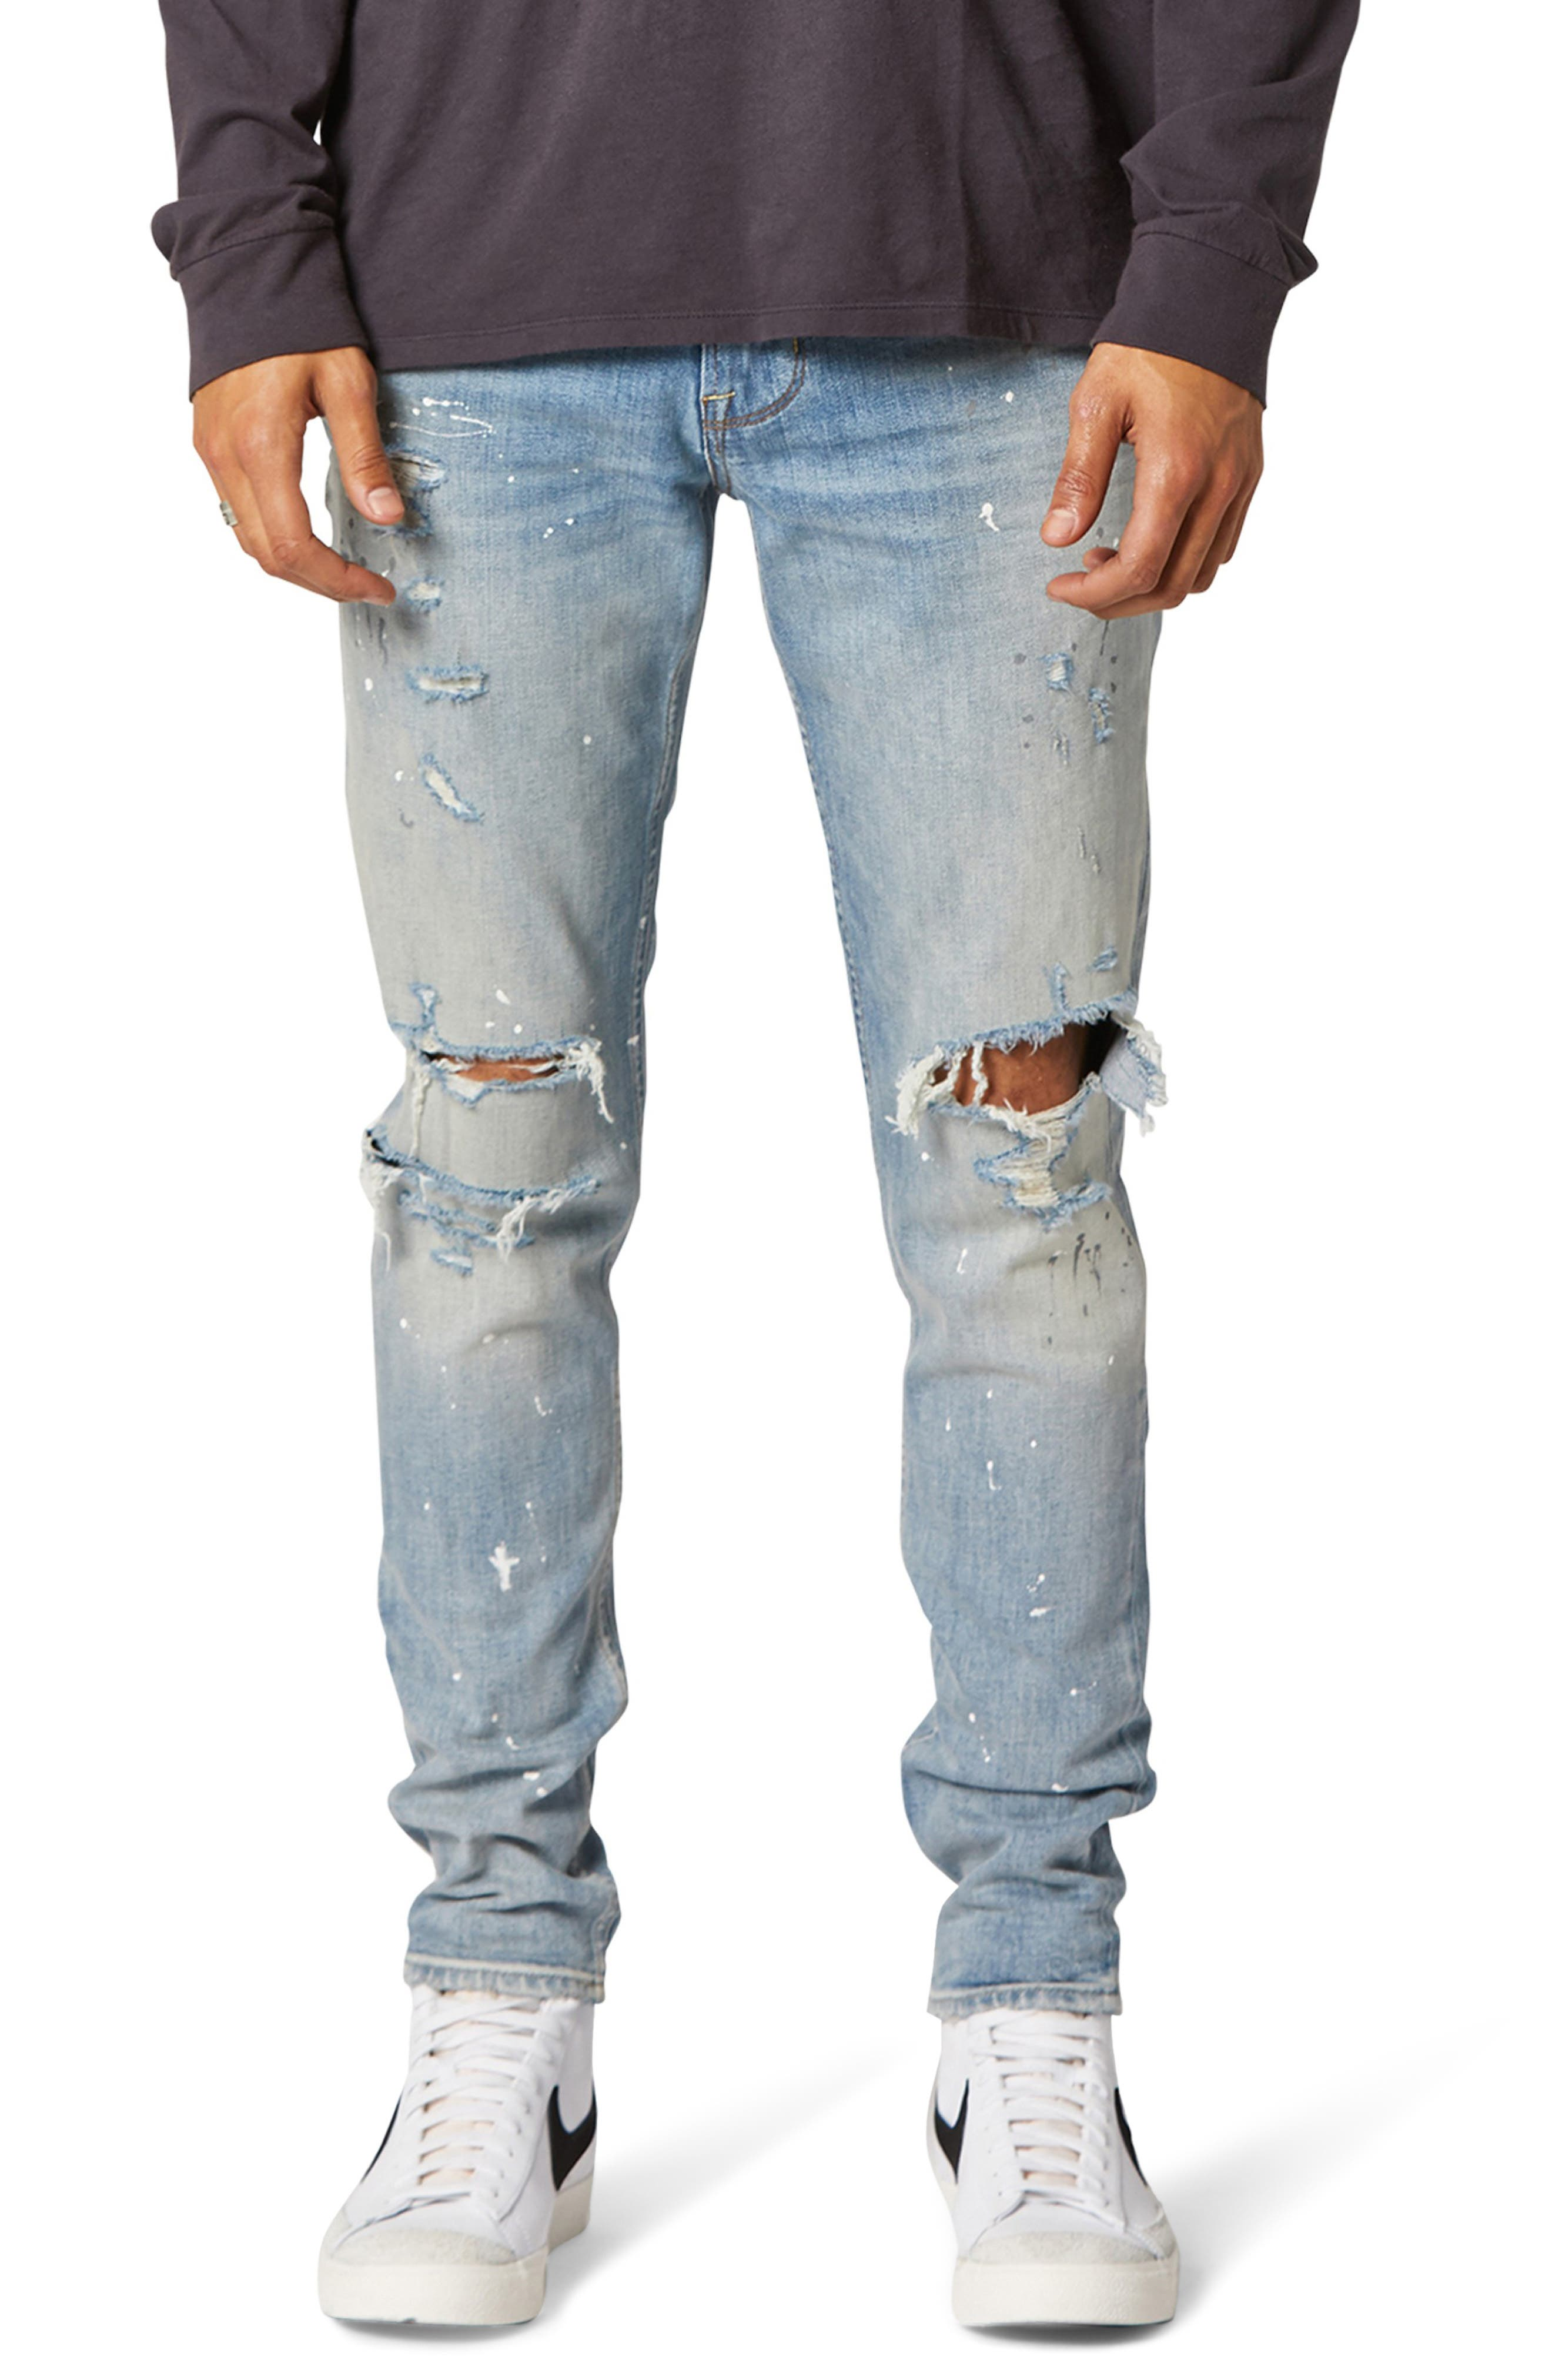 Rips, shreds and the evidence of sloppy painting bring a lot of history to skinny-cut jeans that are totally faded and authentically grungy. Style Name: Hudson Jeans Zack Ripped Skinny Fit Jeans (Mural). Style Number: 6099070. Available in stores.